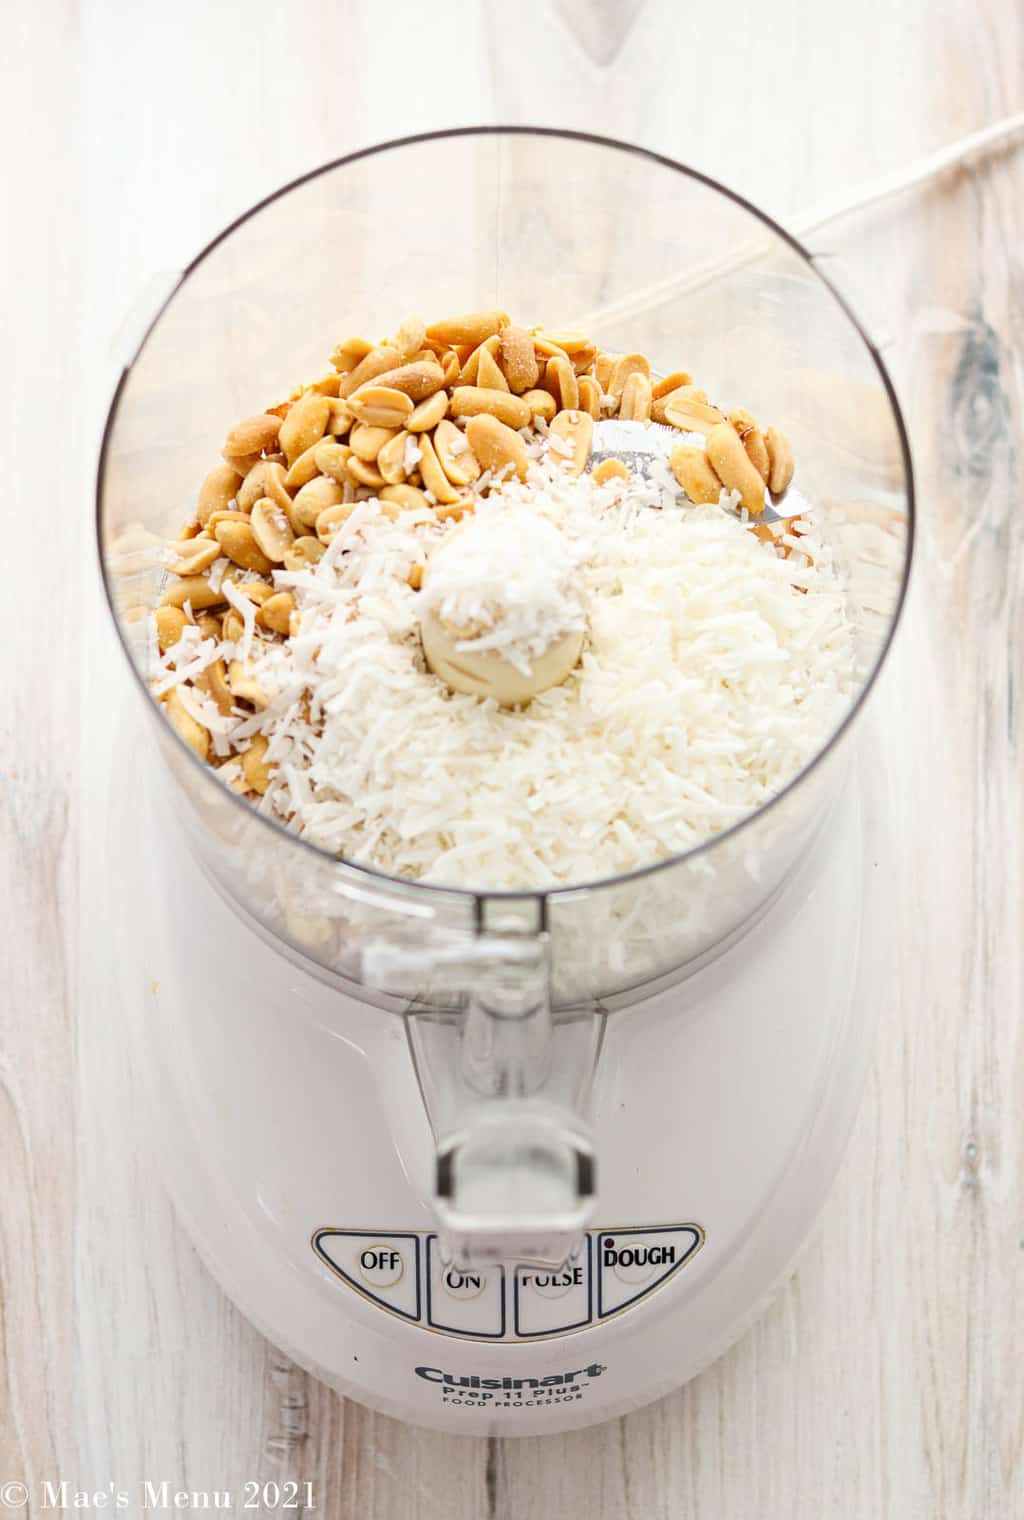 A food processor with peanuts and dried coconut